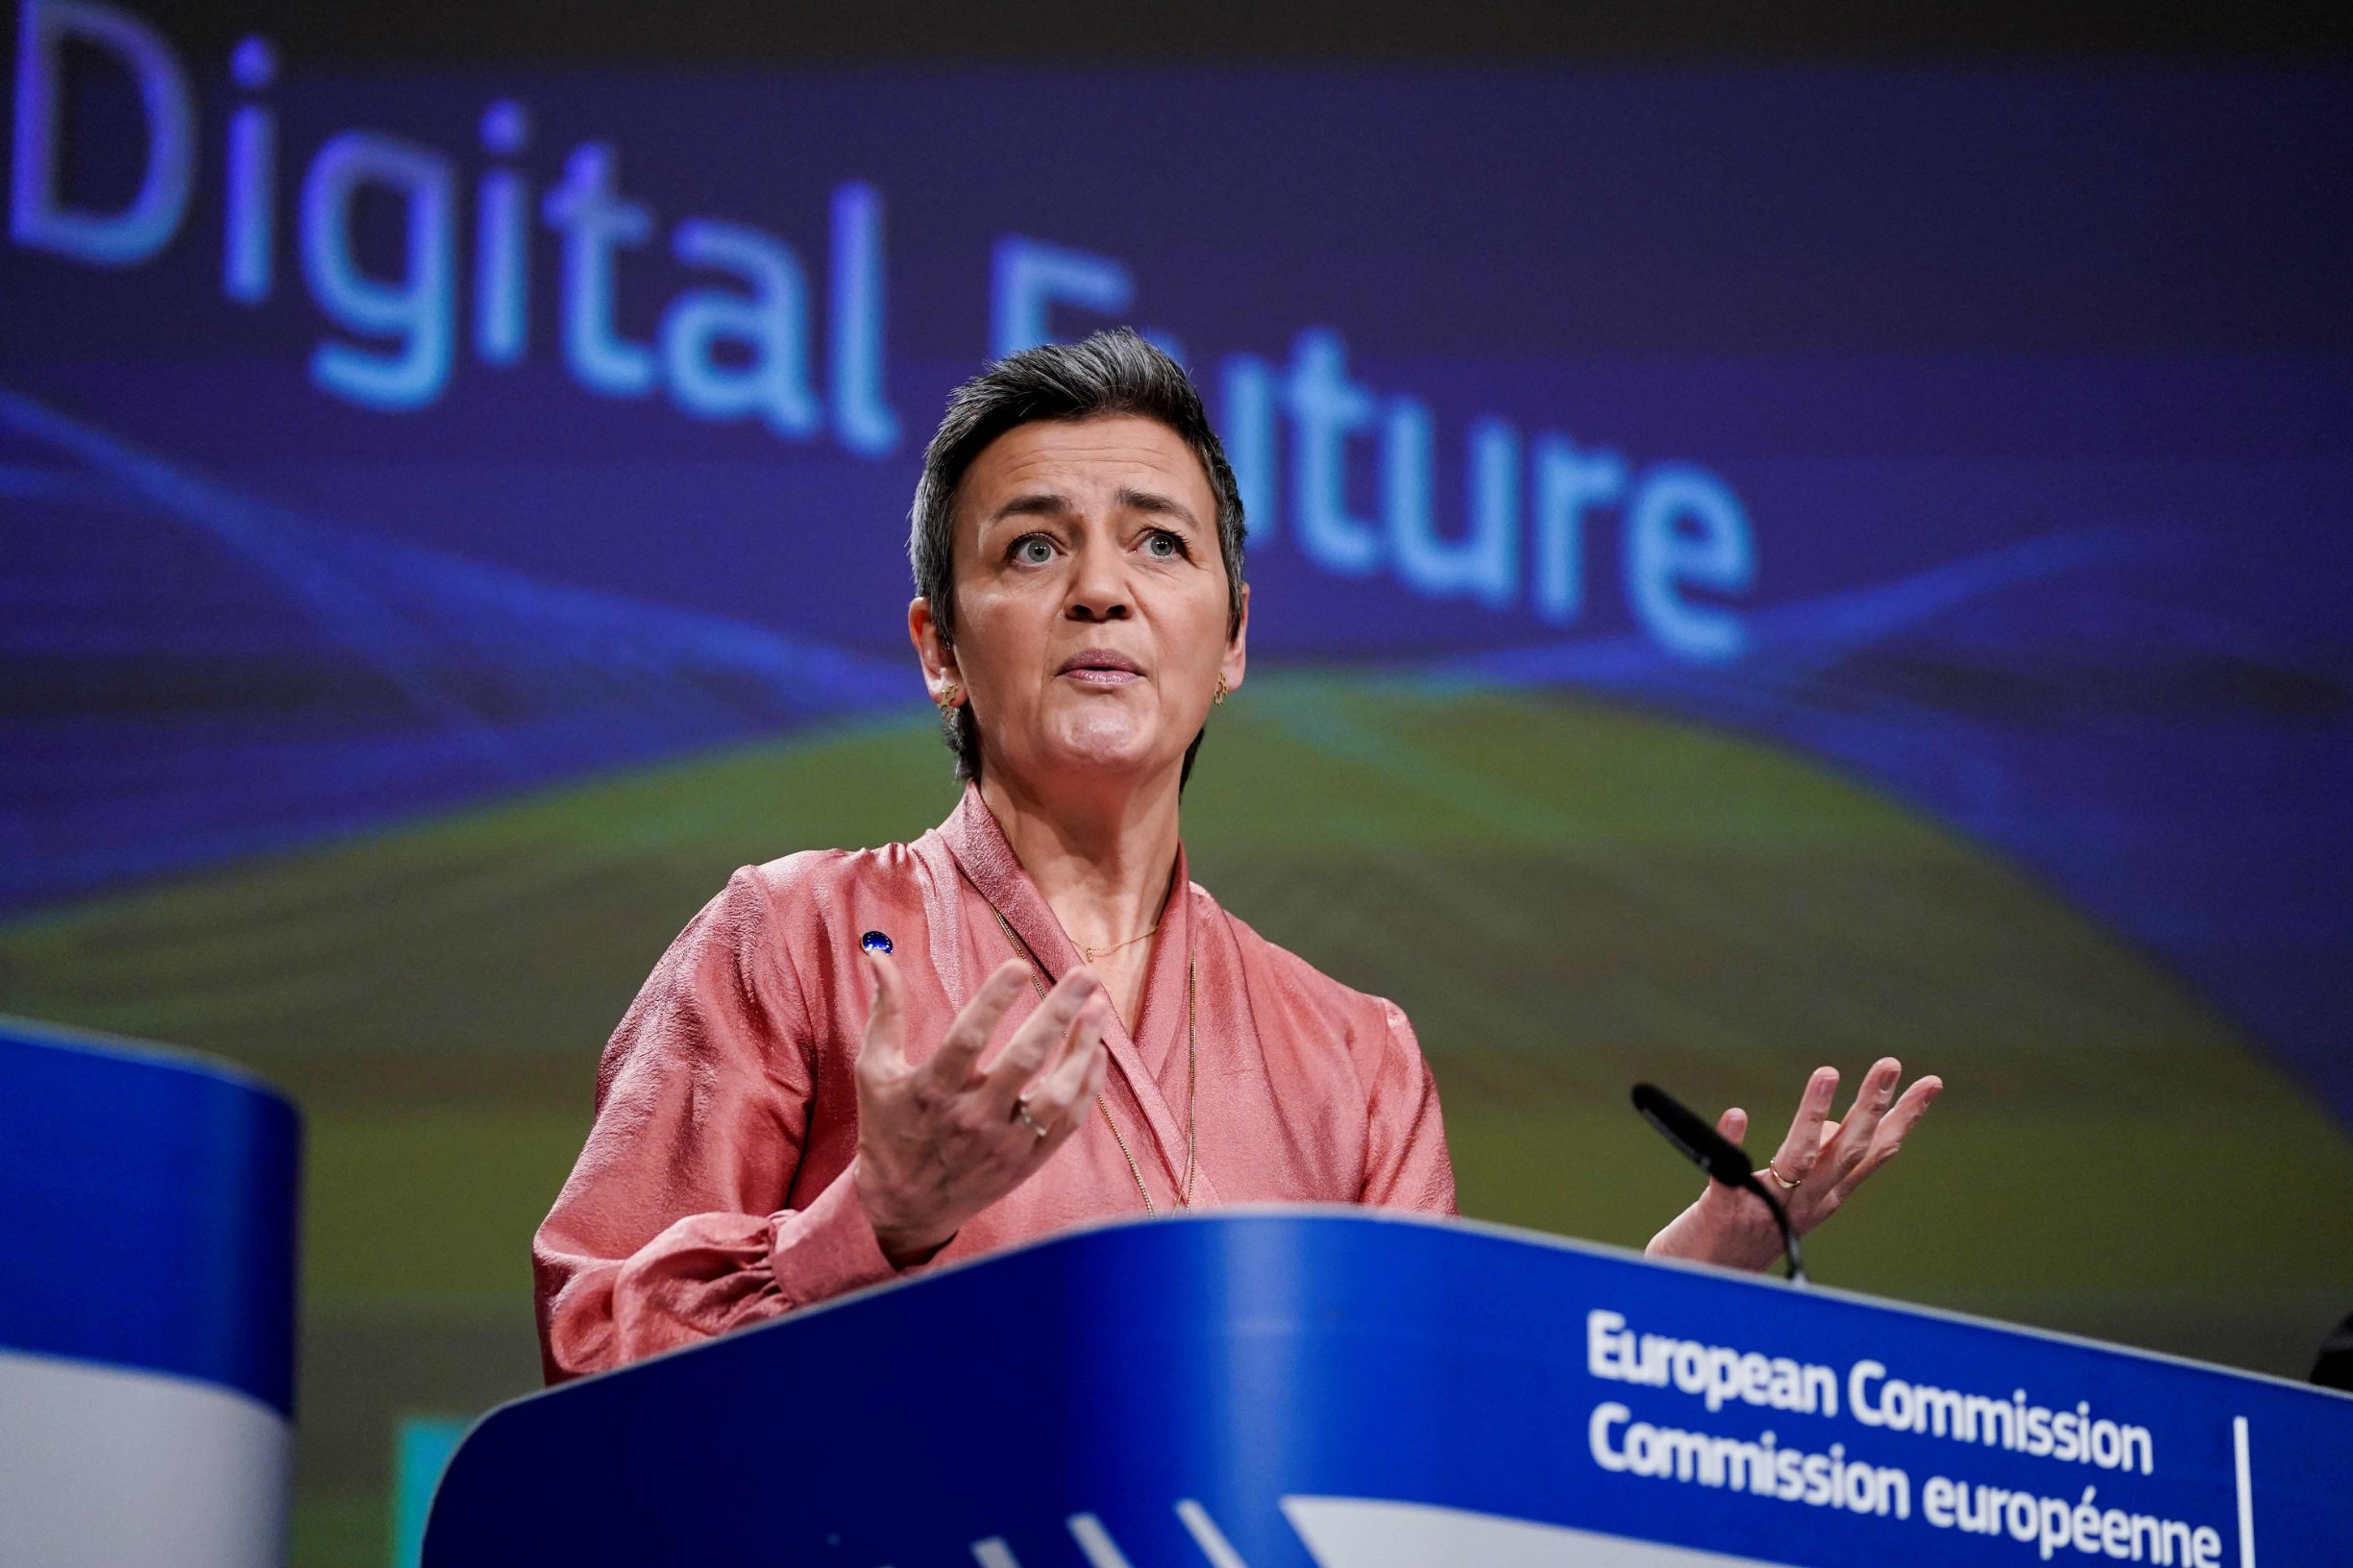 European Commission Executive Vice-President Margrethe Vestager addresses a press conference on Artificial Intelligence (AI) on February 19, 2020 at the European Commission headquarters at the Berlaymont building in Brussels. (Photo by Kenzo TRIBOUILLARD / AFP)